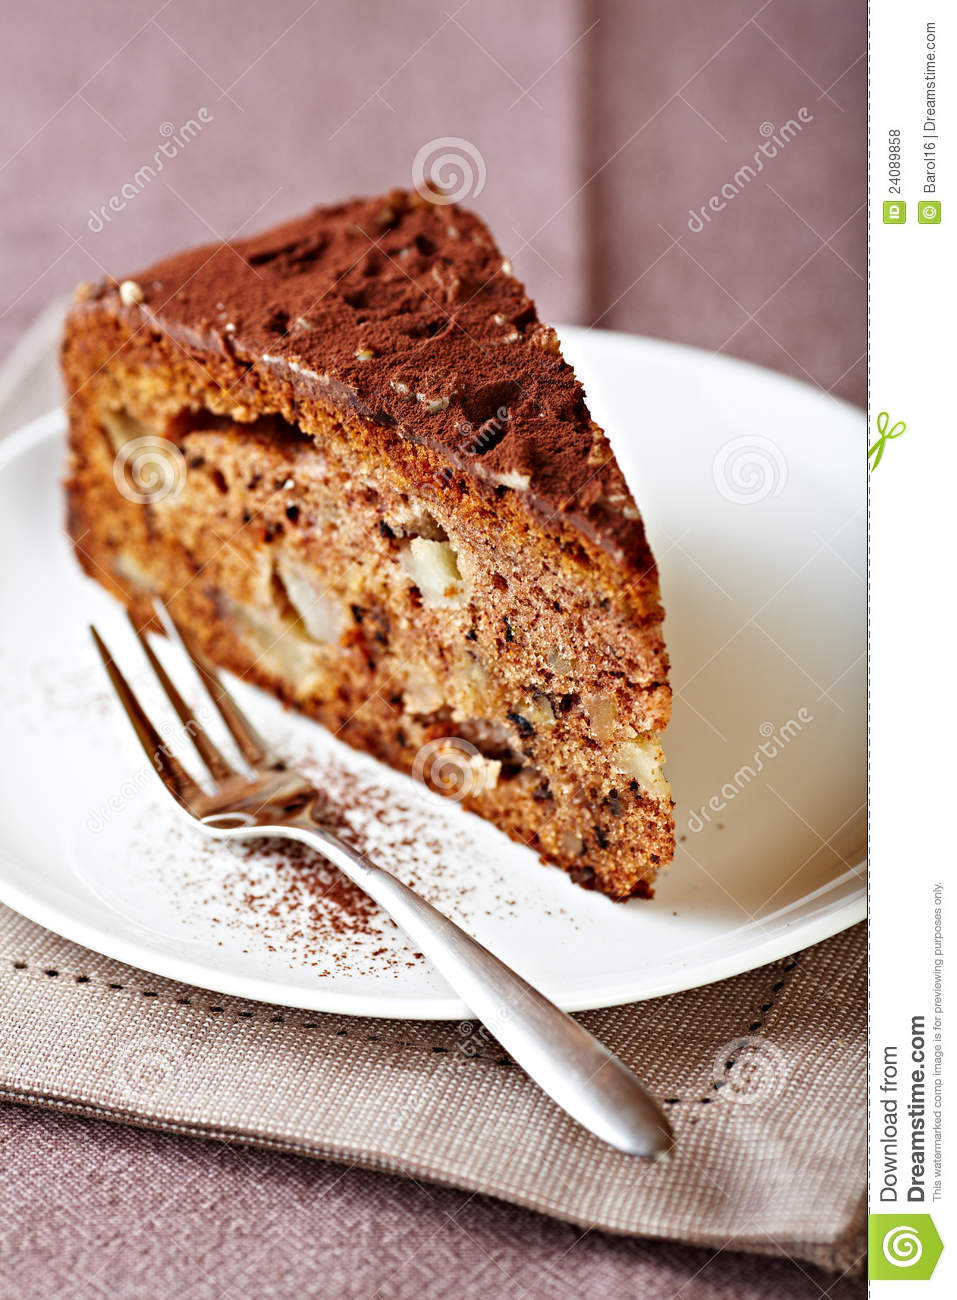 Chocolate Cake With Nuts Royalty Free Stock Photos - Image: 24089858